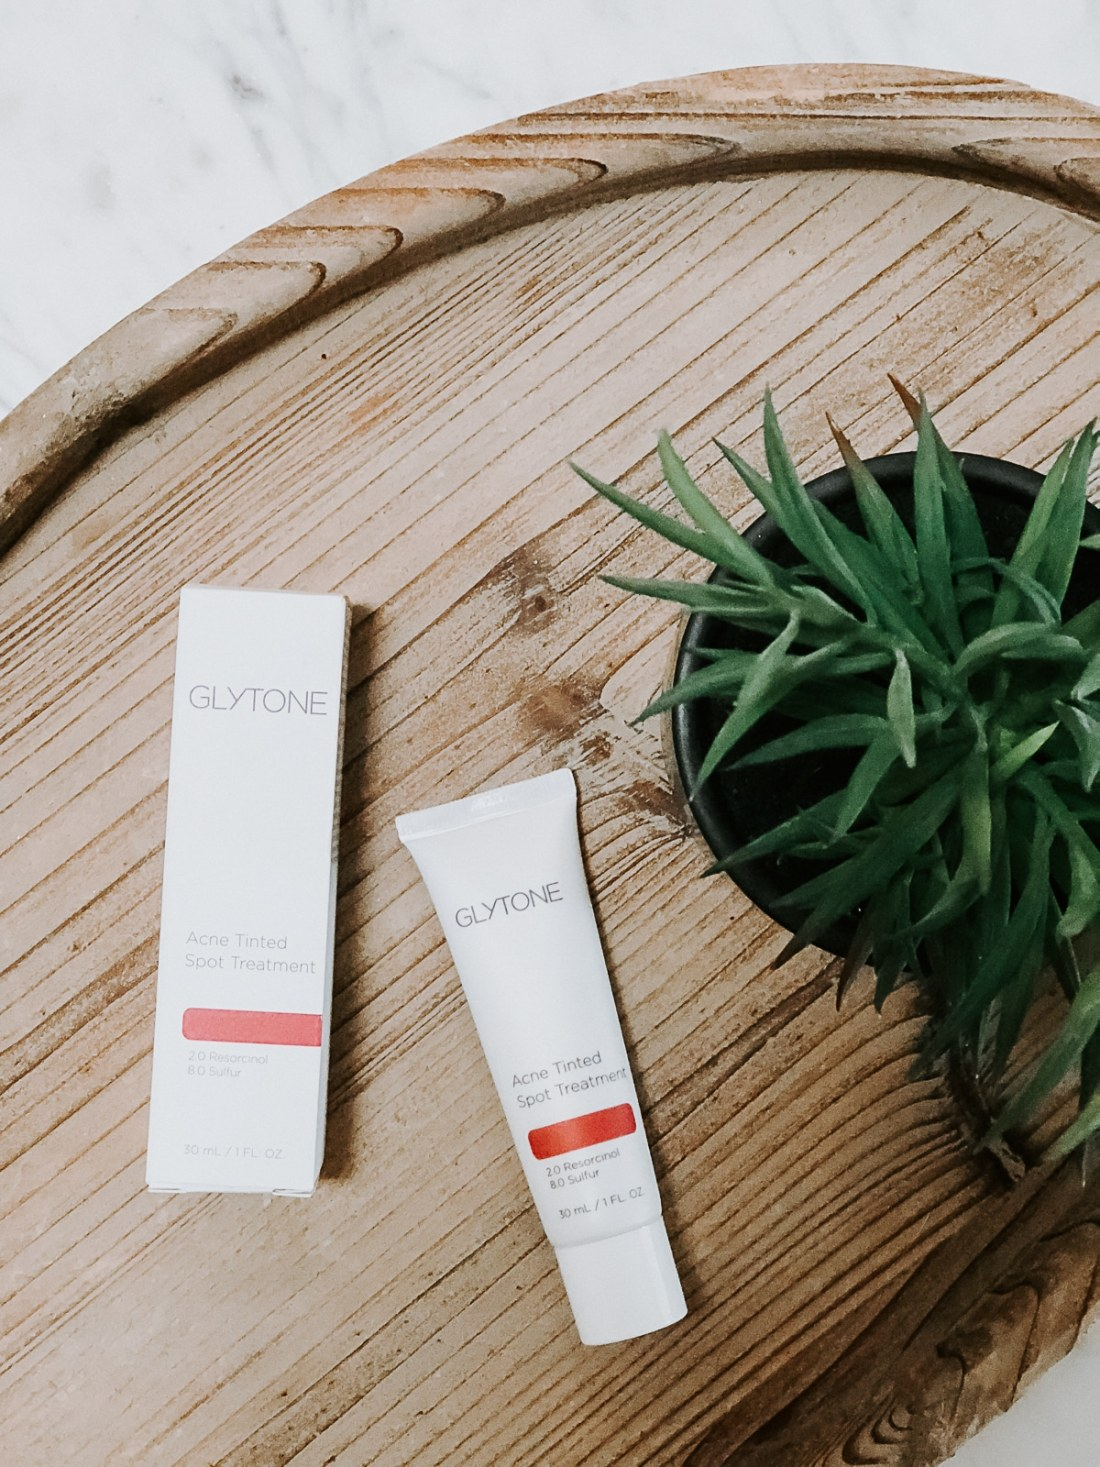 Tinted Acne Spot Treatment product from Glytone